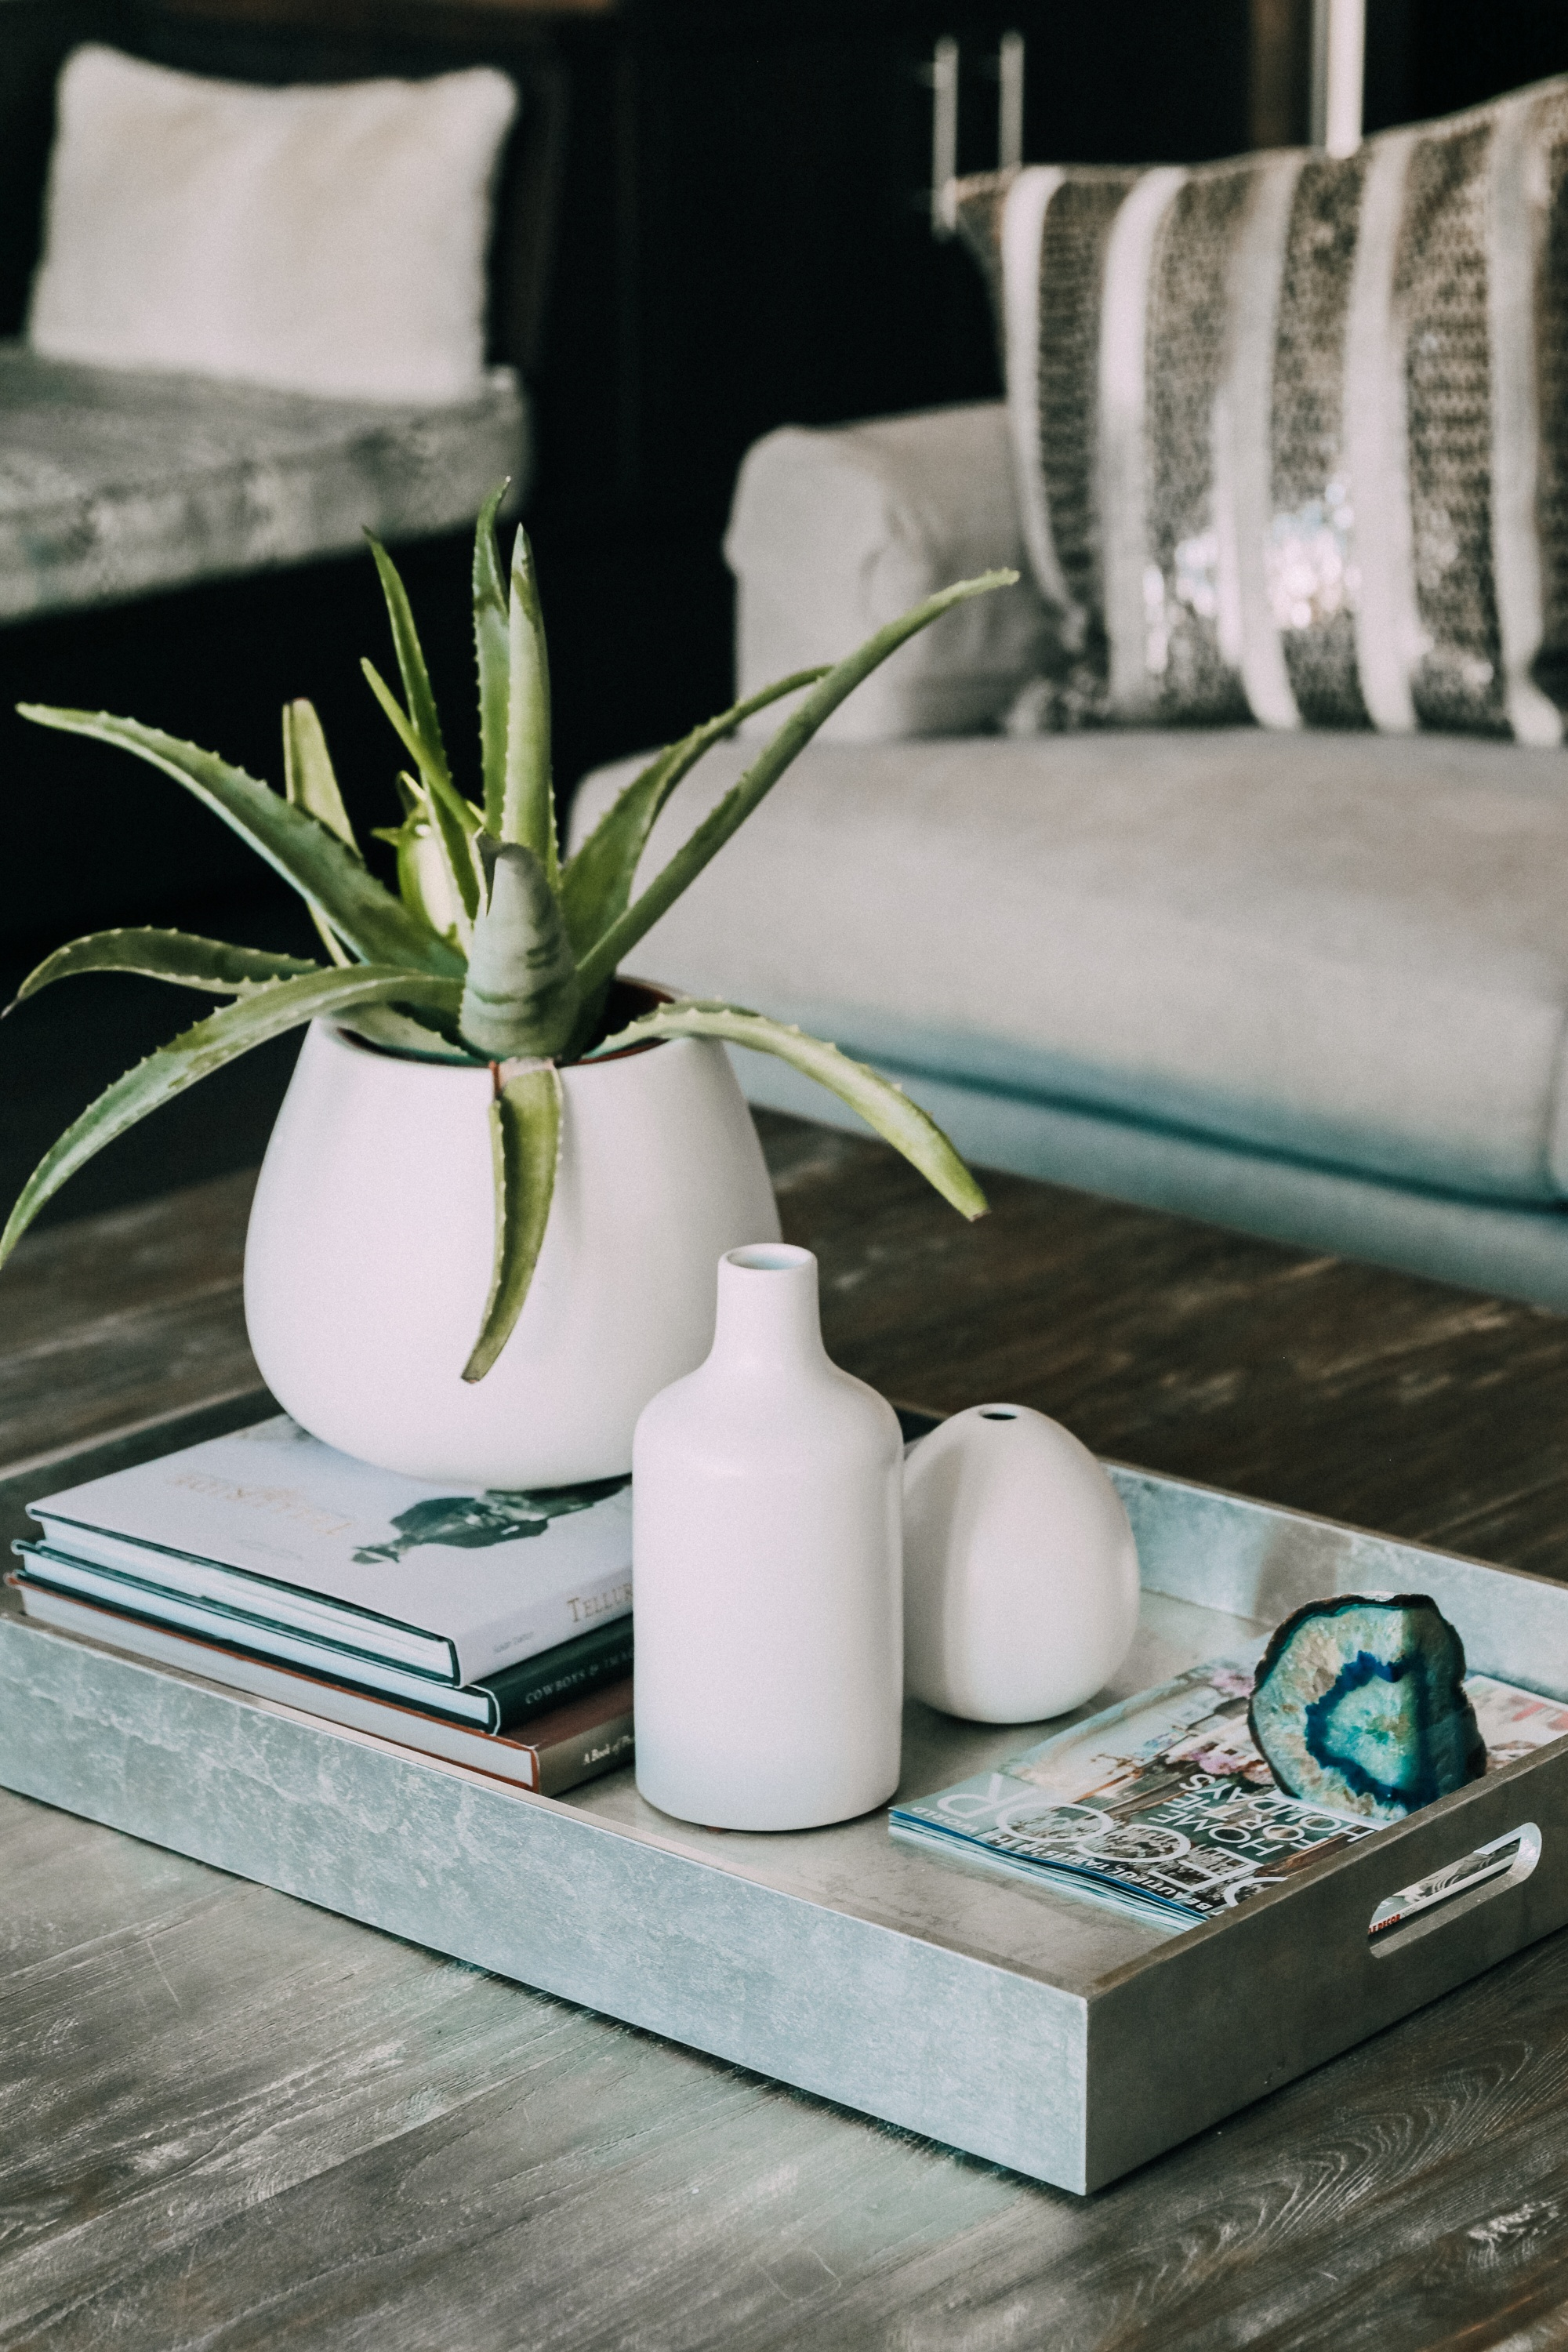 coffee table decor in family room House Tour modern mountain townhome Telluride Colorado